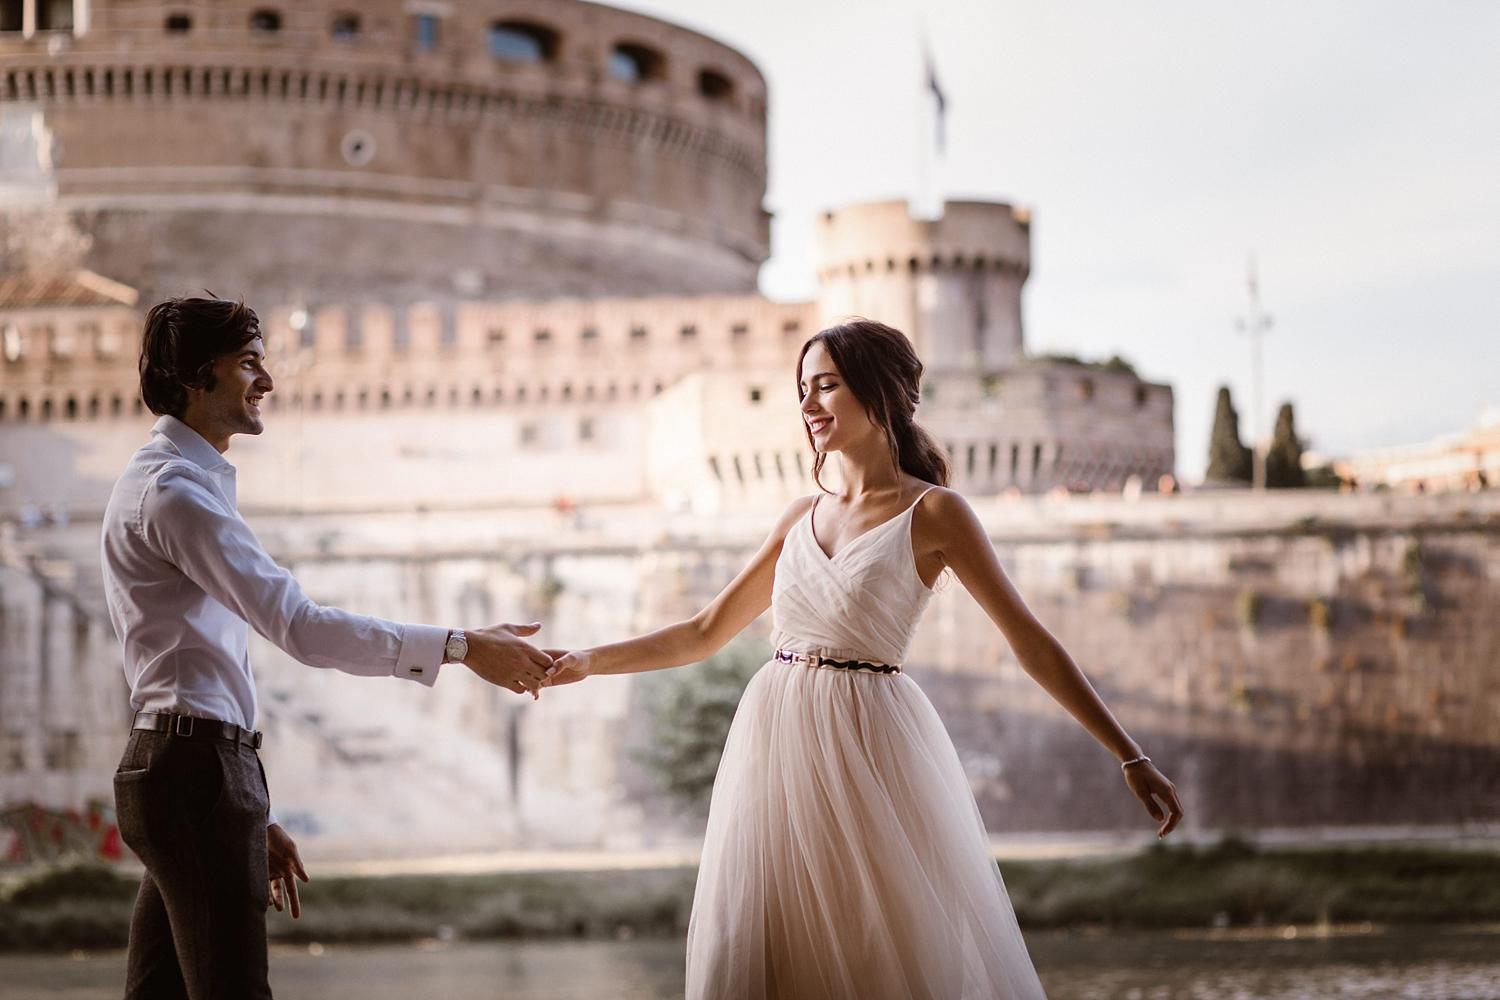 gs weddingphotographer rome 50 - Giulia & Simone - Elegant Couple Shooting in Rome